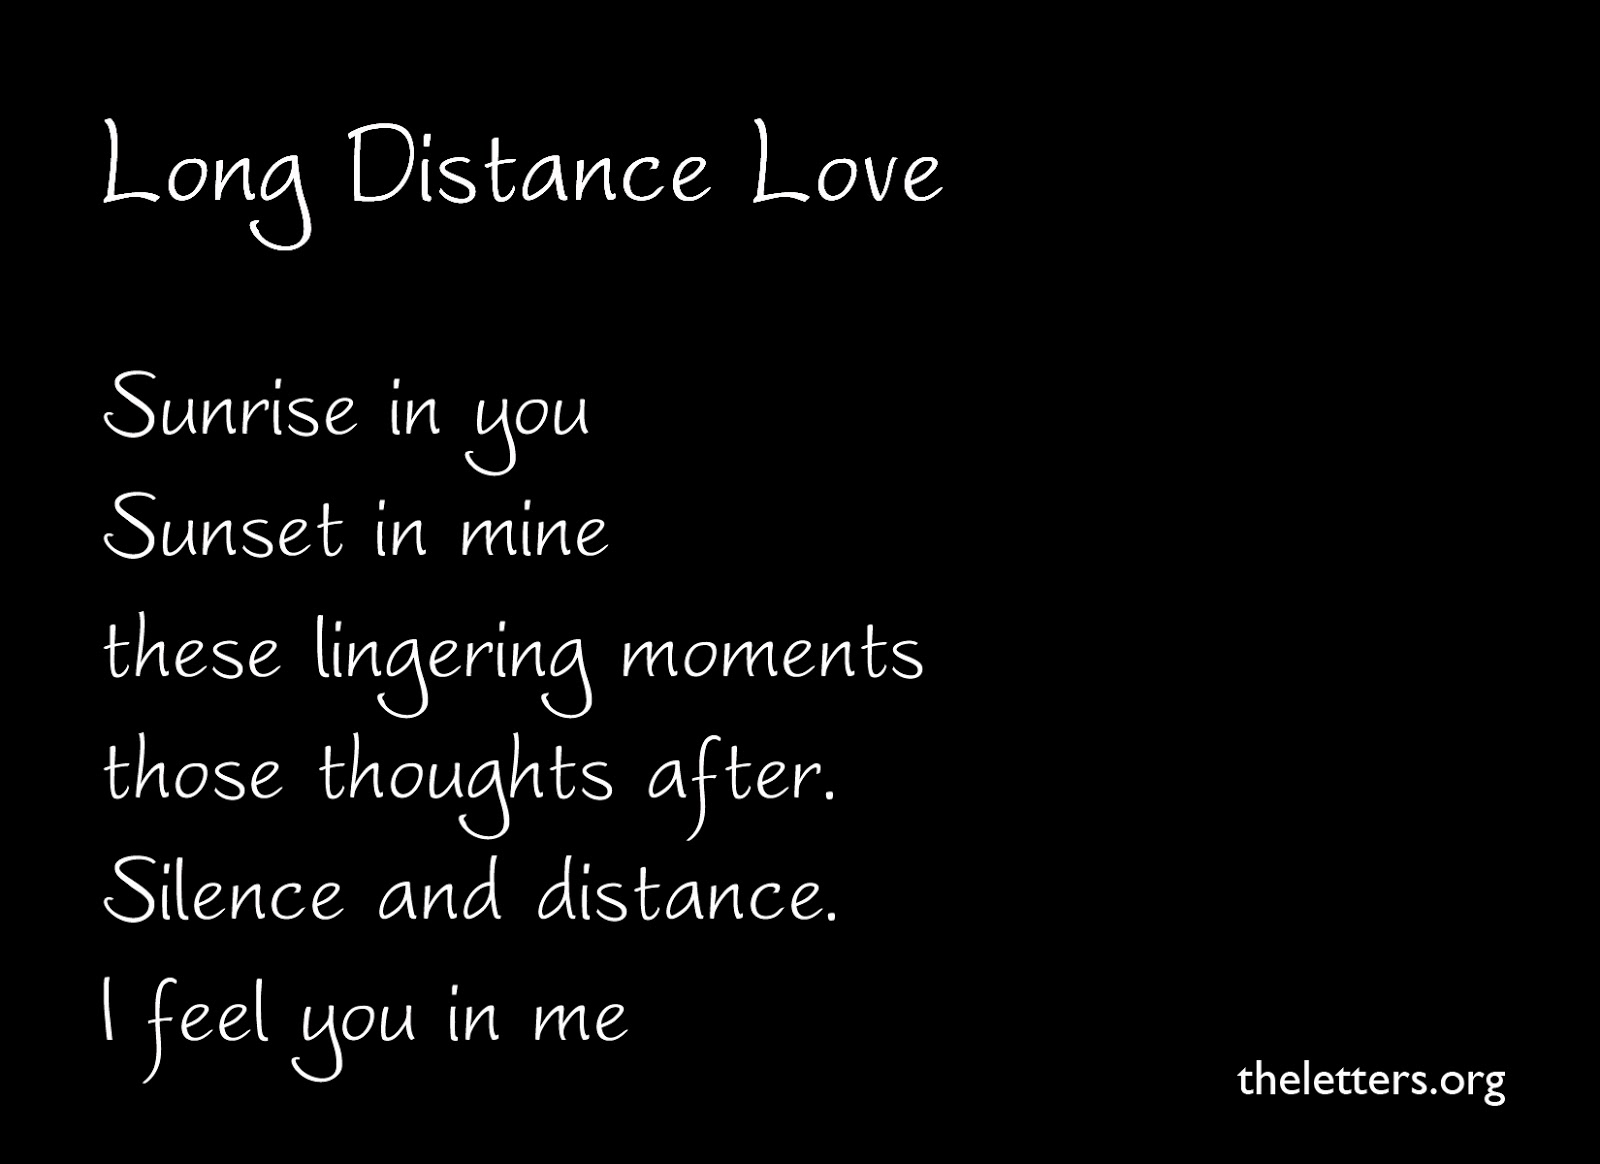 Long Distance Love Quotes : Cute Long Distance Love Quotes For Him. QuotesGram